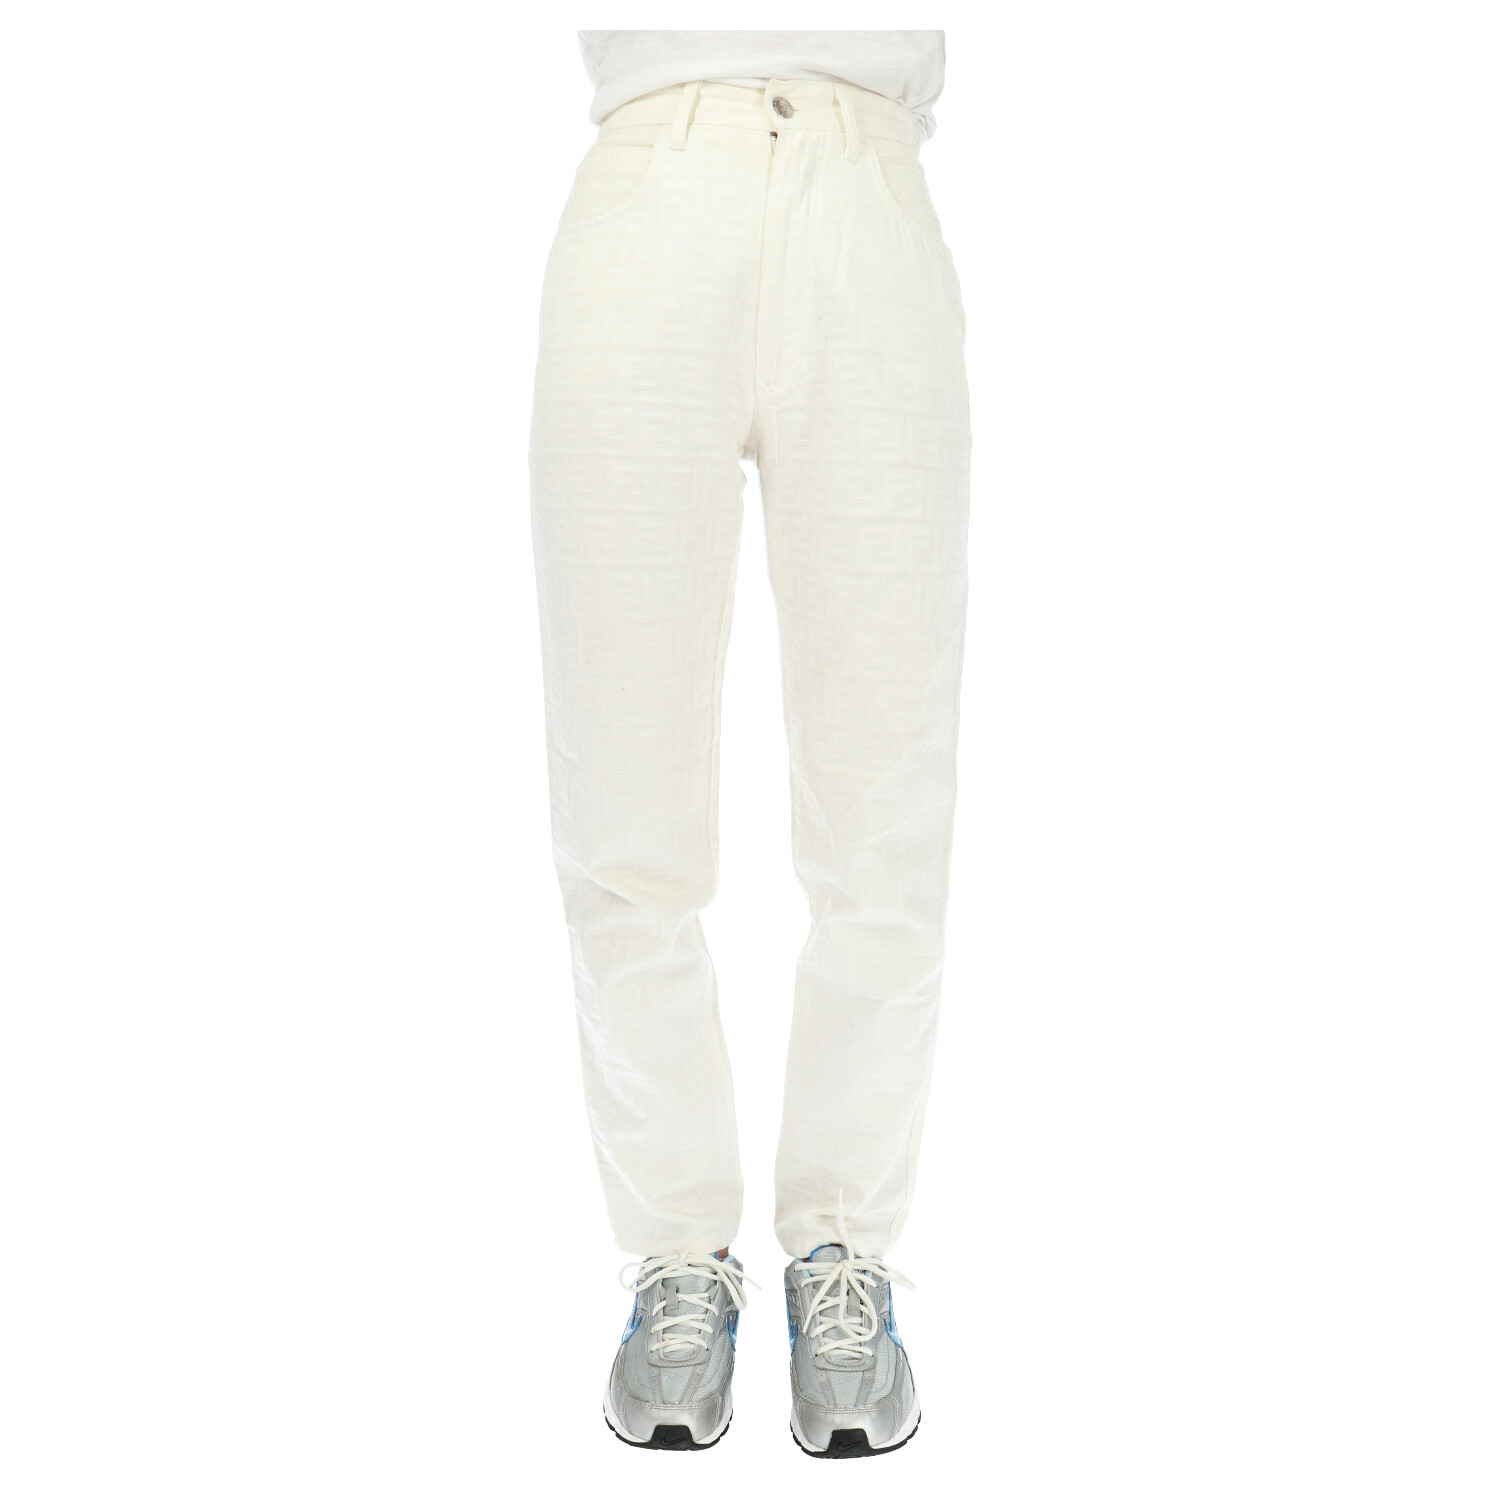 Fendi White Zucca Fabric Pants